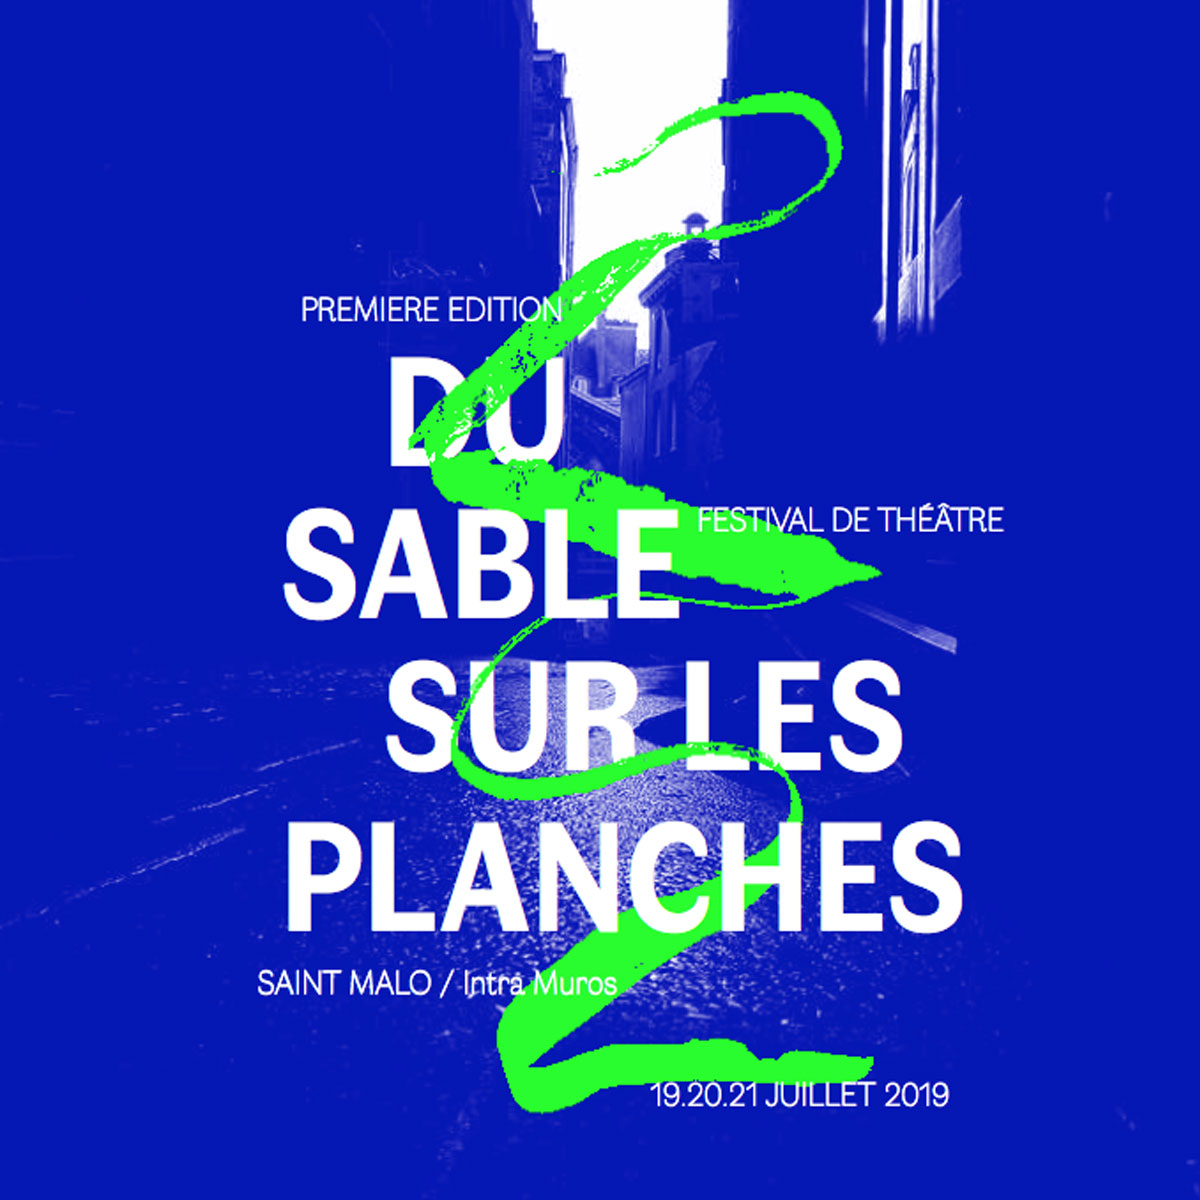 du-sable-planches-institutd-affiche-bleu-vert